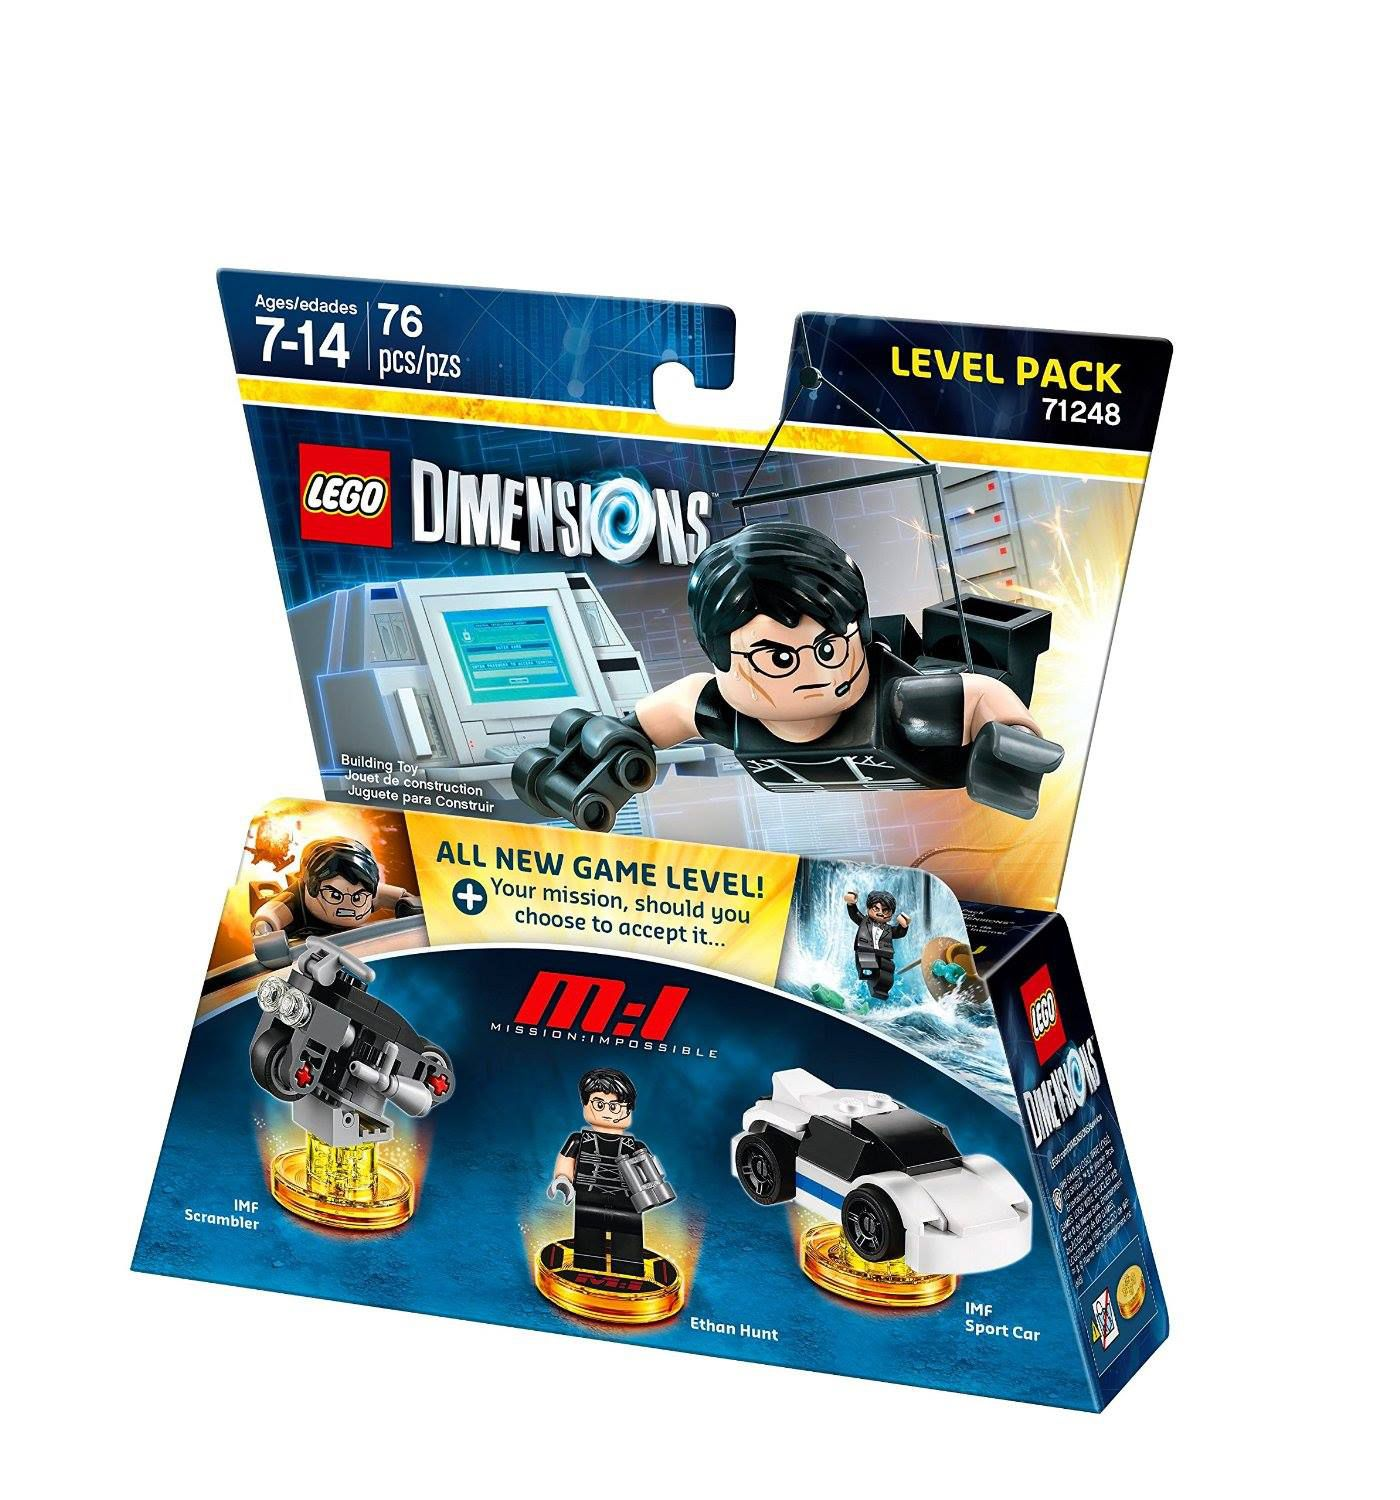 LEGO Dimensions 71248 Level Pack Mission Impossible LEGO_DIMENSIONS_71248_Mission-Impossible-01.jpg